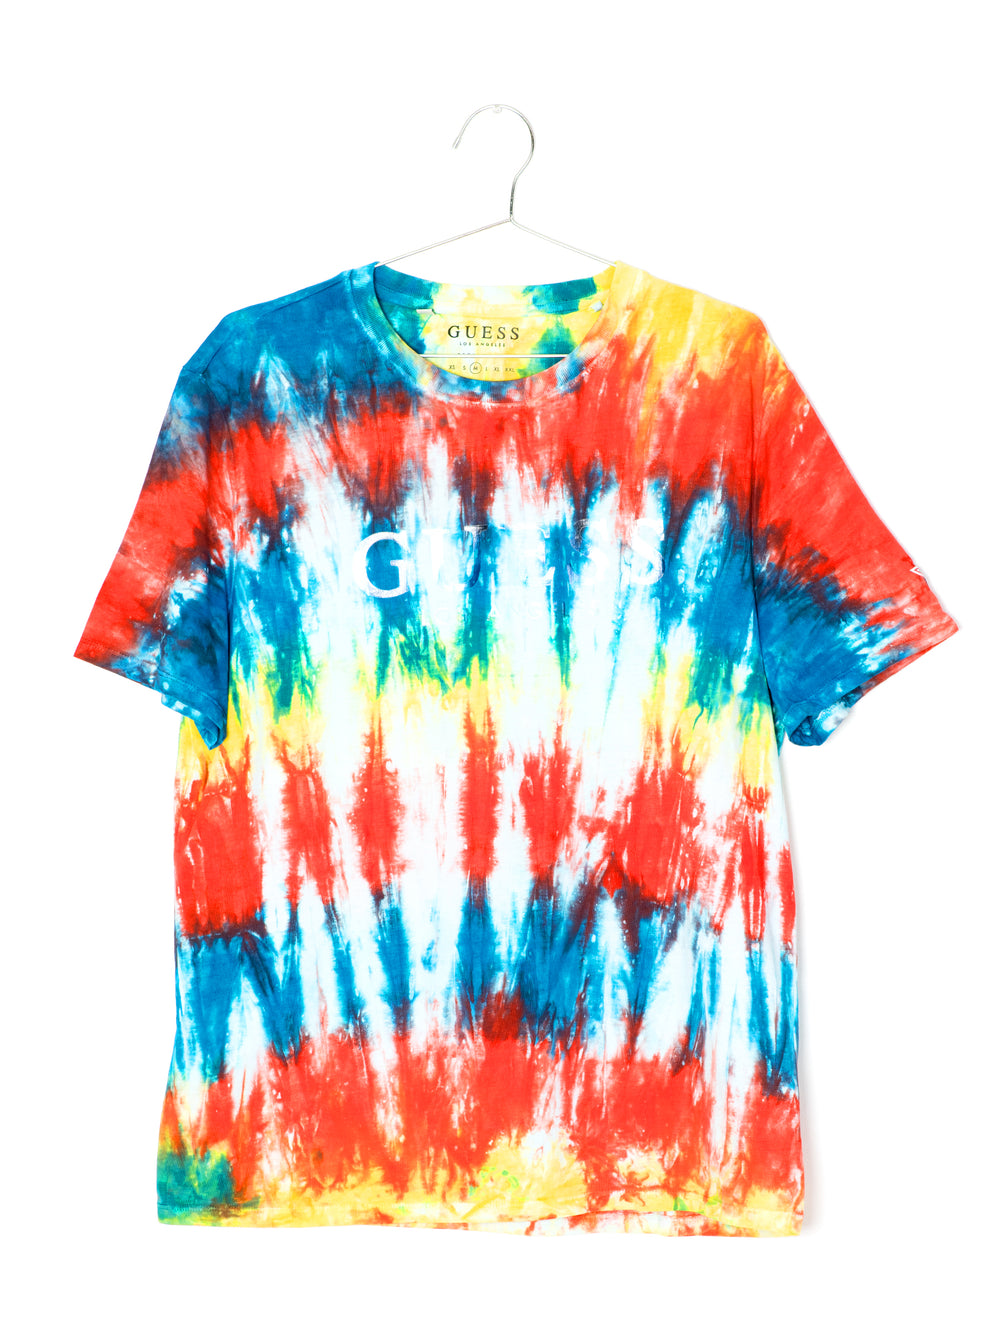 MENS GUESS MULTI TIE DYE S/S T